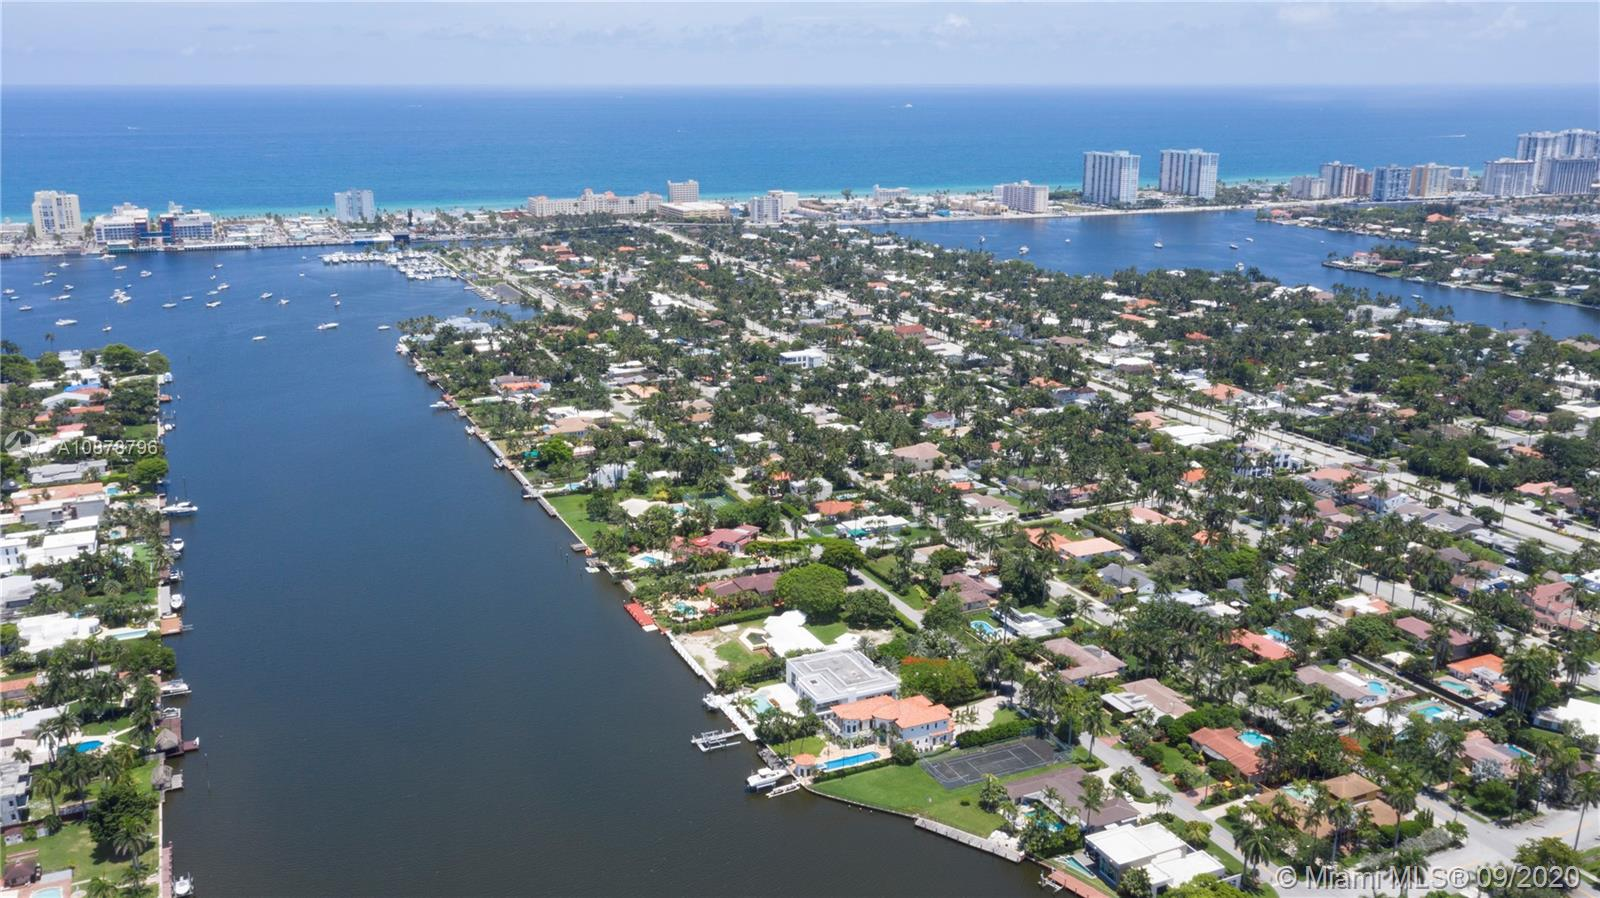 This impressive unique oversize 32,508 Sqf waterfront Lot, is the jewel of Hollywood Lakes. 2019 New Seawall and 80 ft. dock built to the highest & most current standards. Boater's paradise with direct access to Intracoastal and Atlantic Ocean no fixed bridges. Huge front and back yard perfect for designing per your lifestyle desire. Enjoy the richness of the new SLS Golf Resort (formerly Diplomat) which is going through a $220 million renovation and course redesign by Greg Norman. Make your dream home a reality. Just steps away from the full service Hollywood Boating Marina. Price is for land value. HOLLYWOOD HAS IT ALL!!